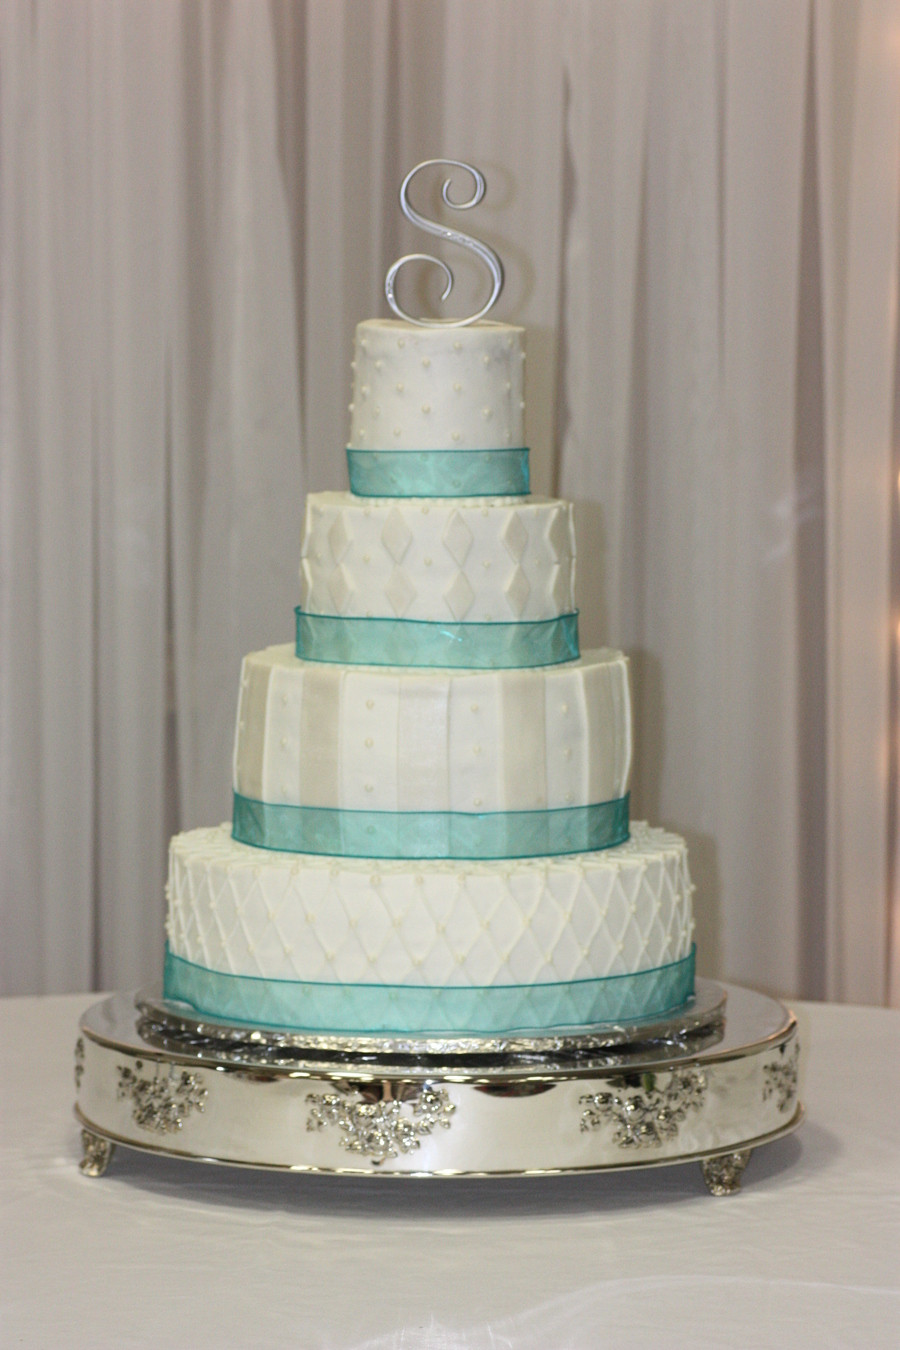 Teal And White Wedding Cake  Teal Ribbon Round White Wedding Cake CakeCentral